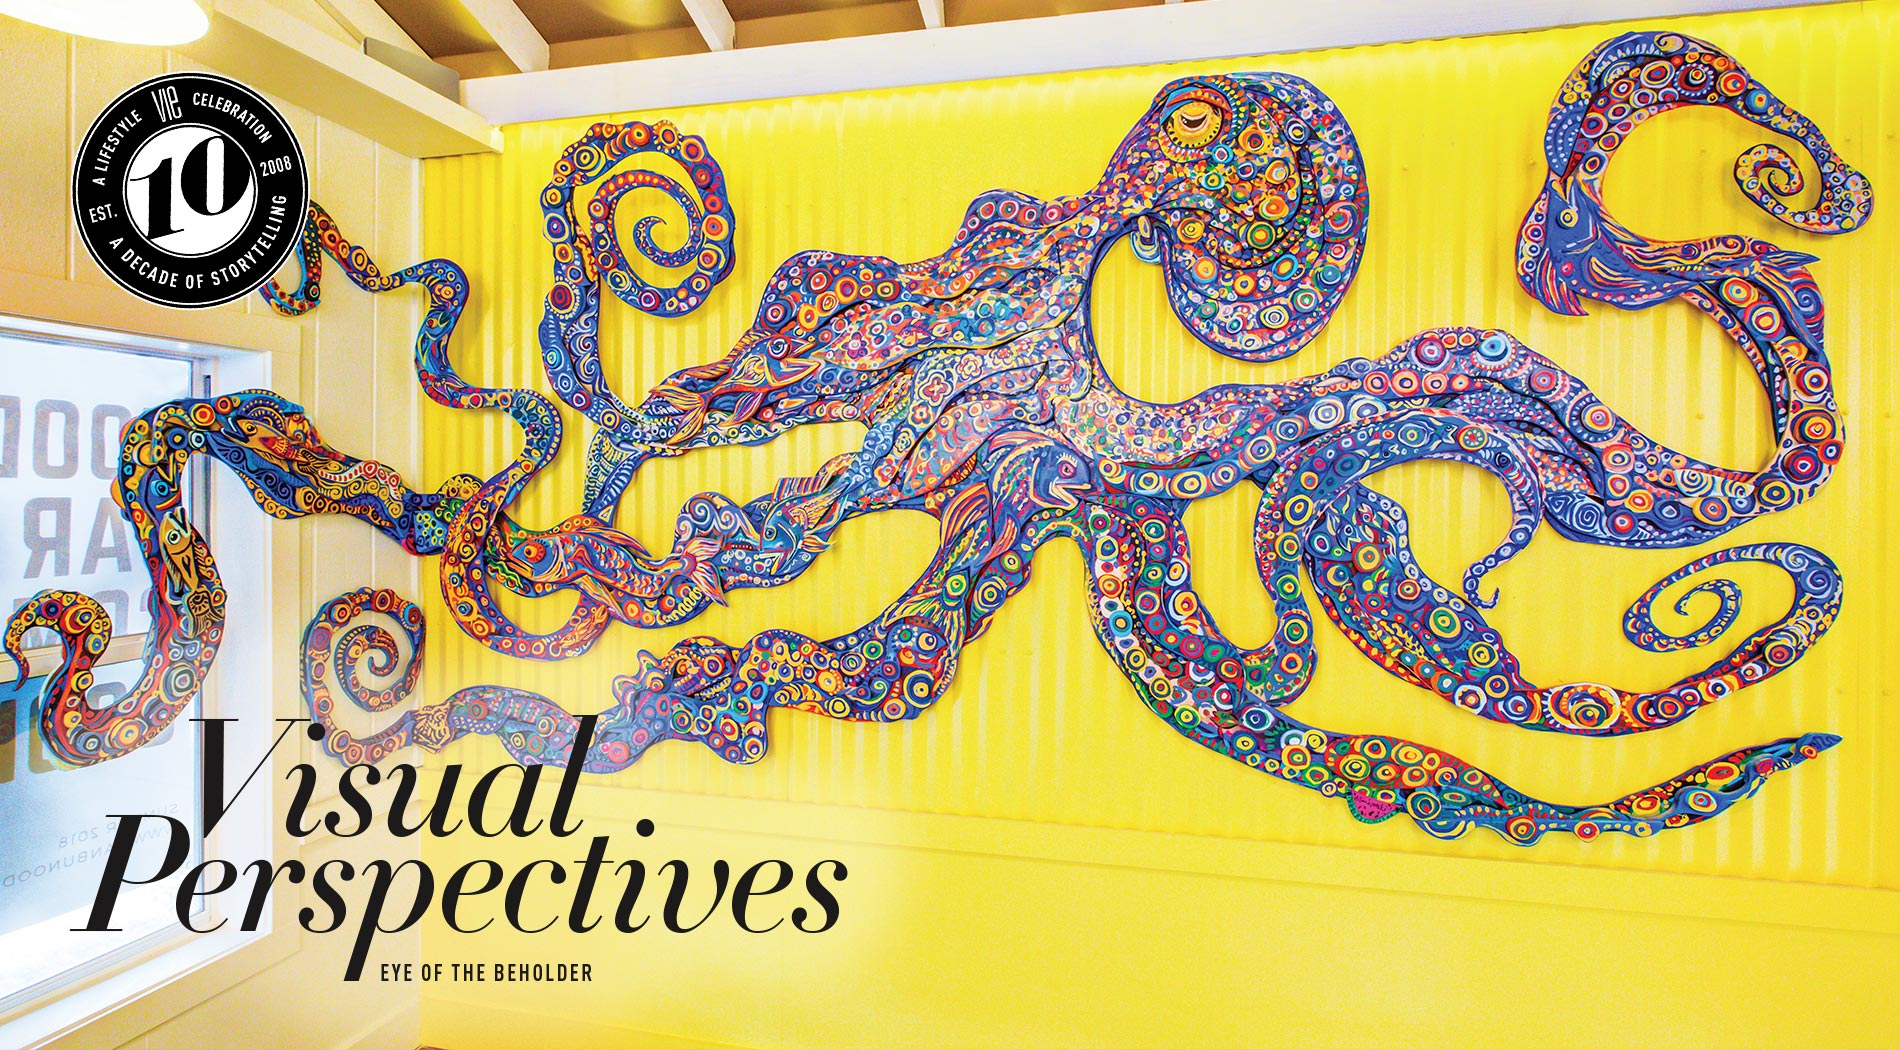 VIE Magazine - The Art & Culture Issue - October 2018 - Visual Perspectives